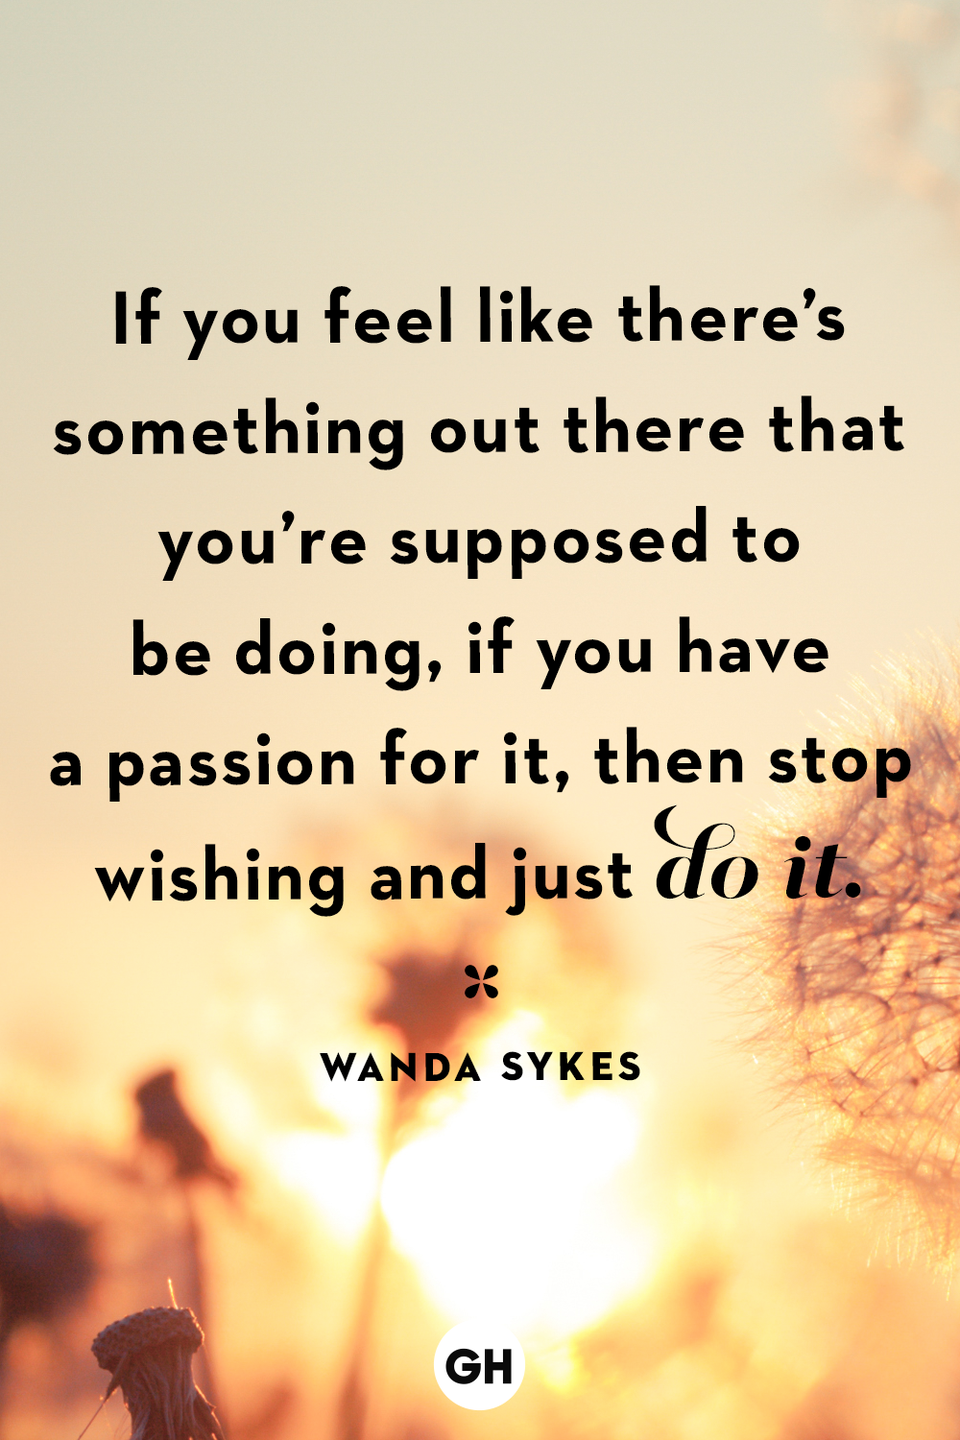 <p>If you feel like there's something out there that you're supposed to be doing, if you have a passion for it, then stop wishing and just do it. </p>